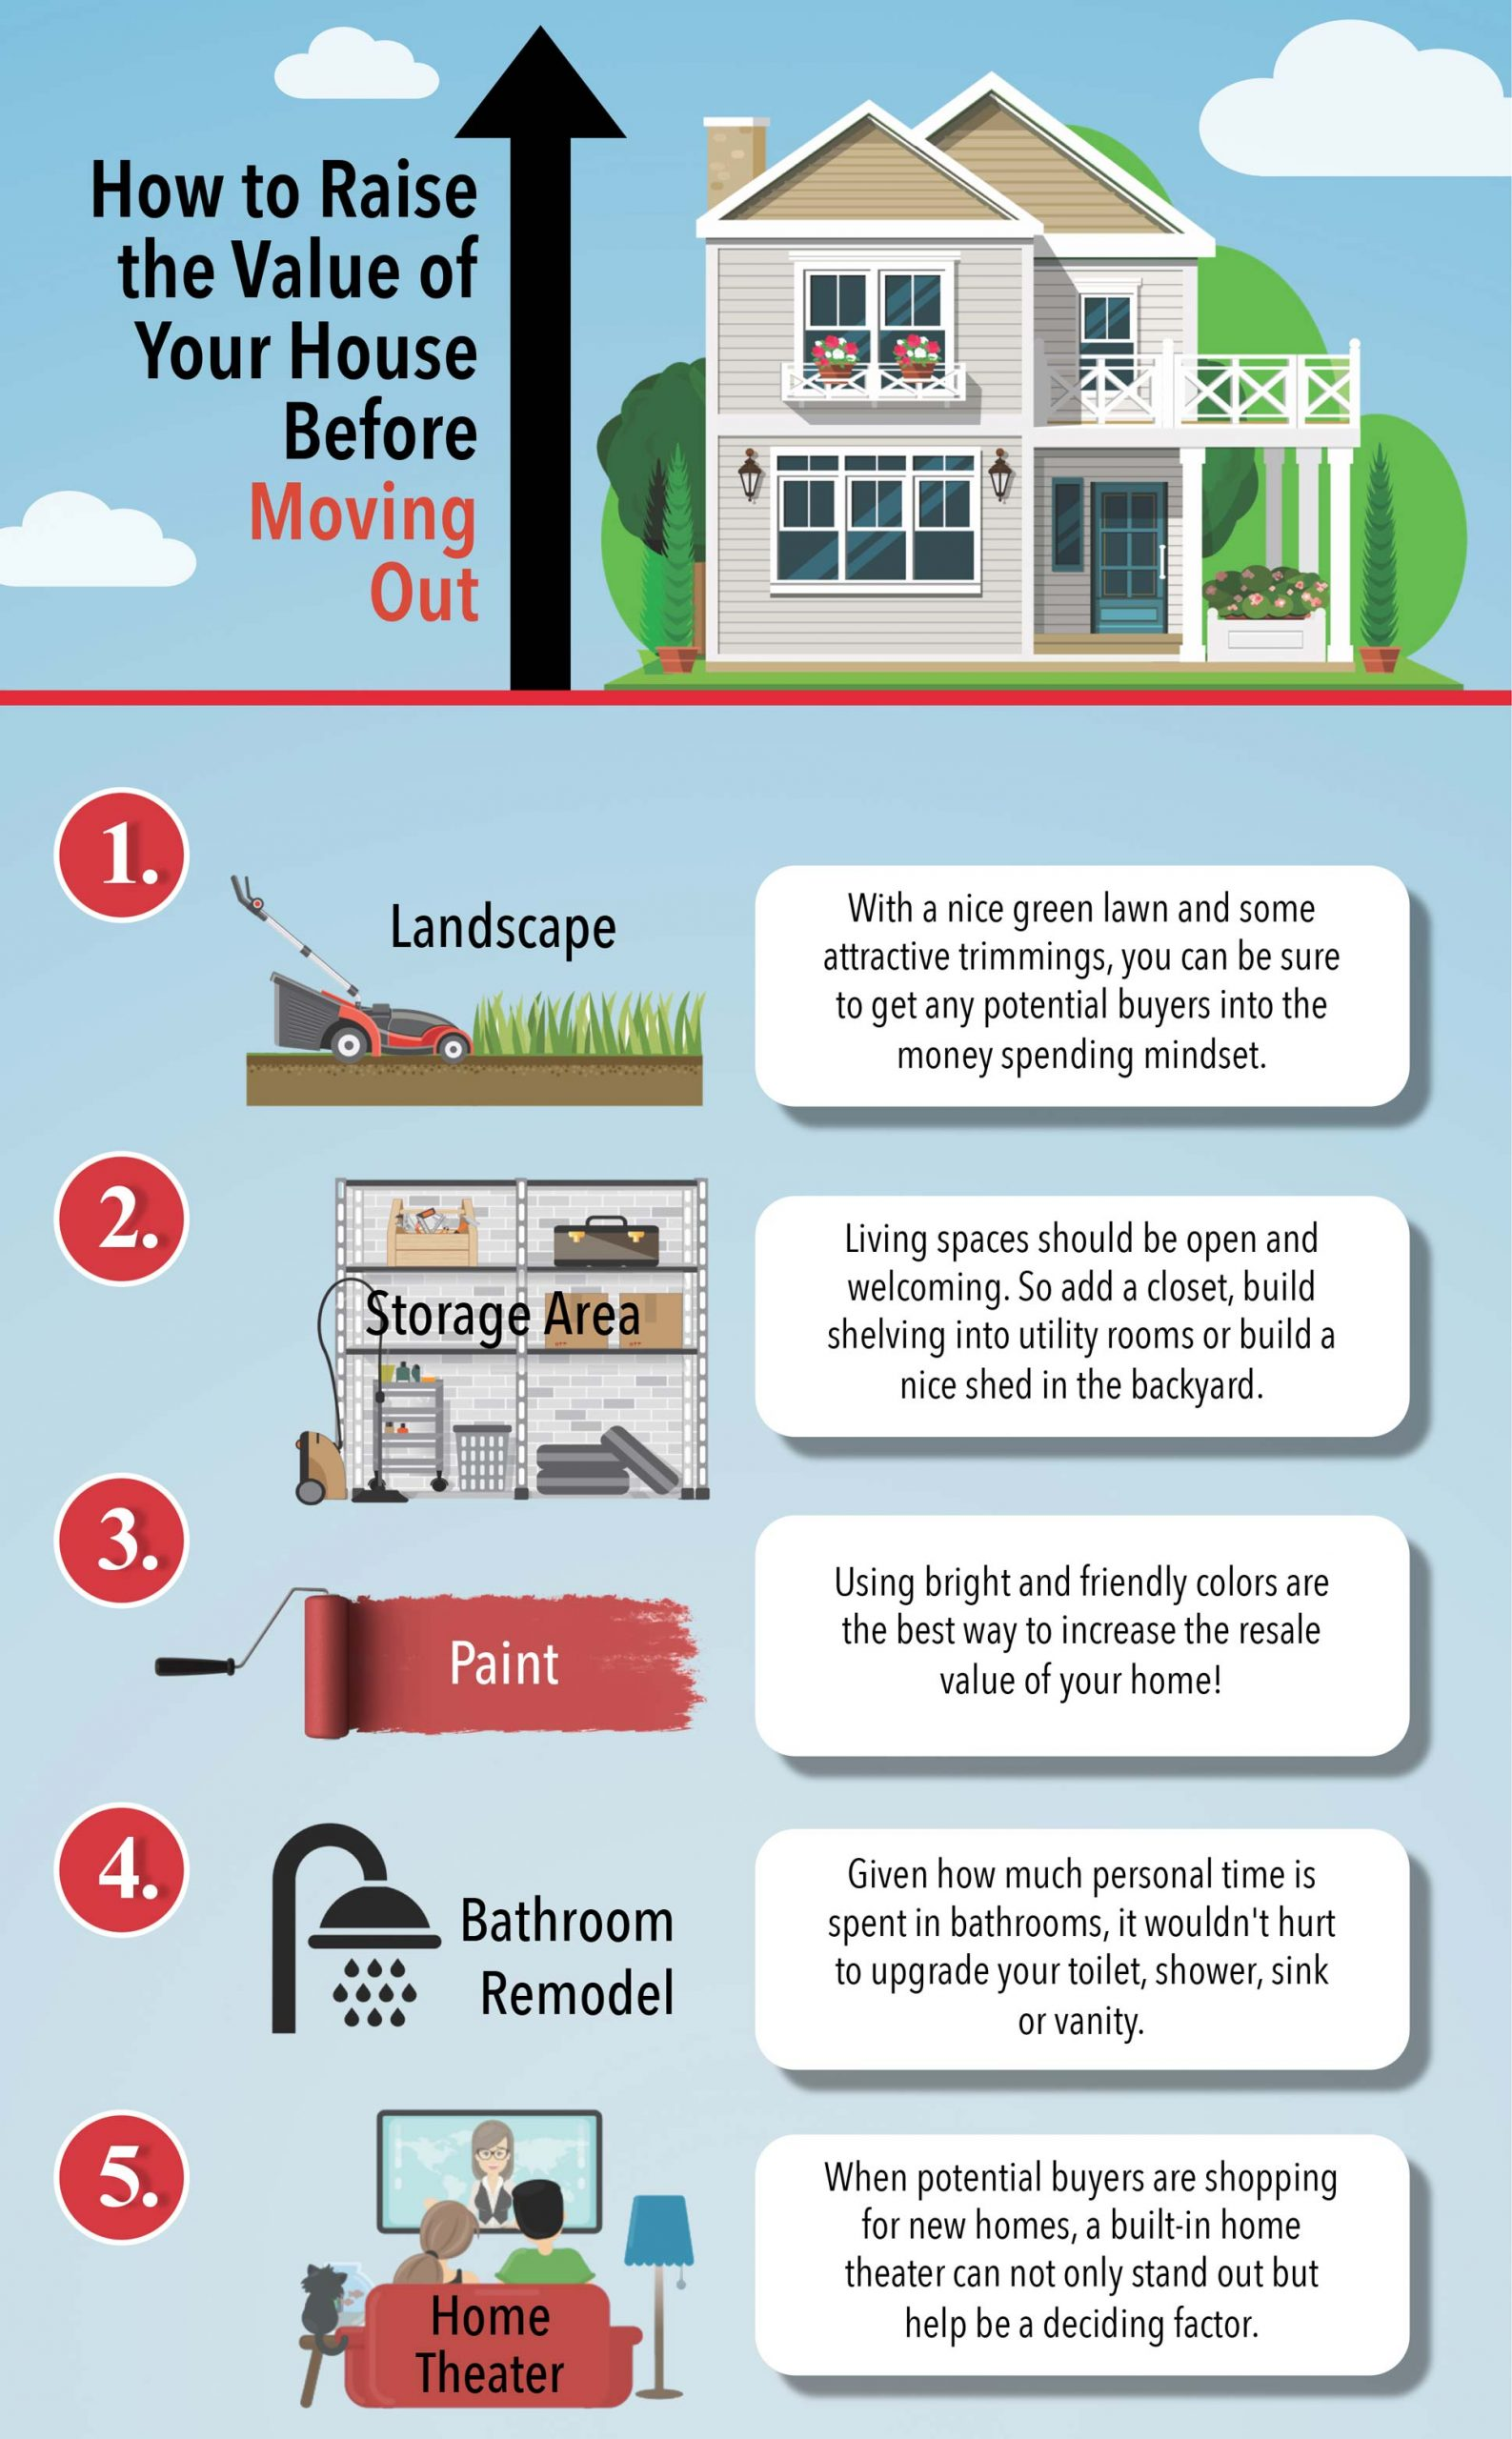 How To Raise The Value Of Your House Before Moving Infographic Scaled